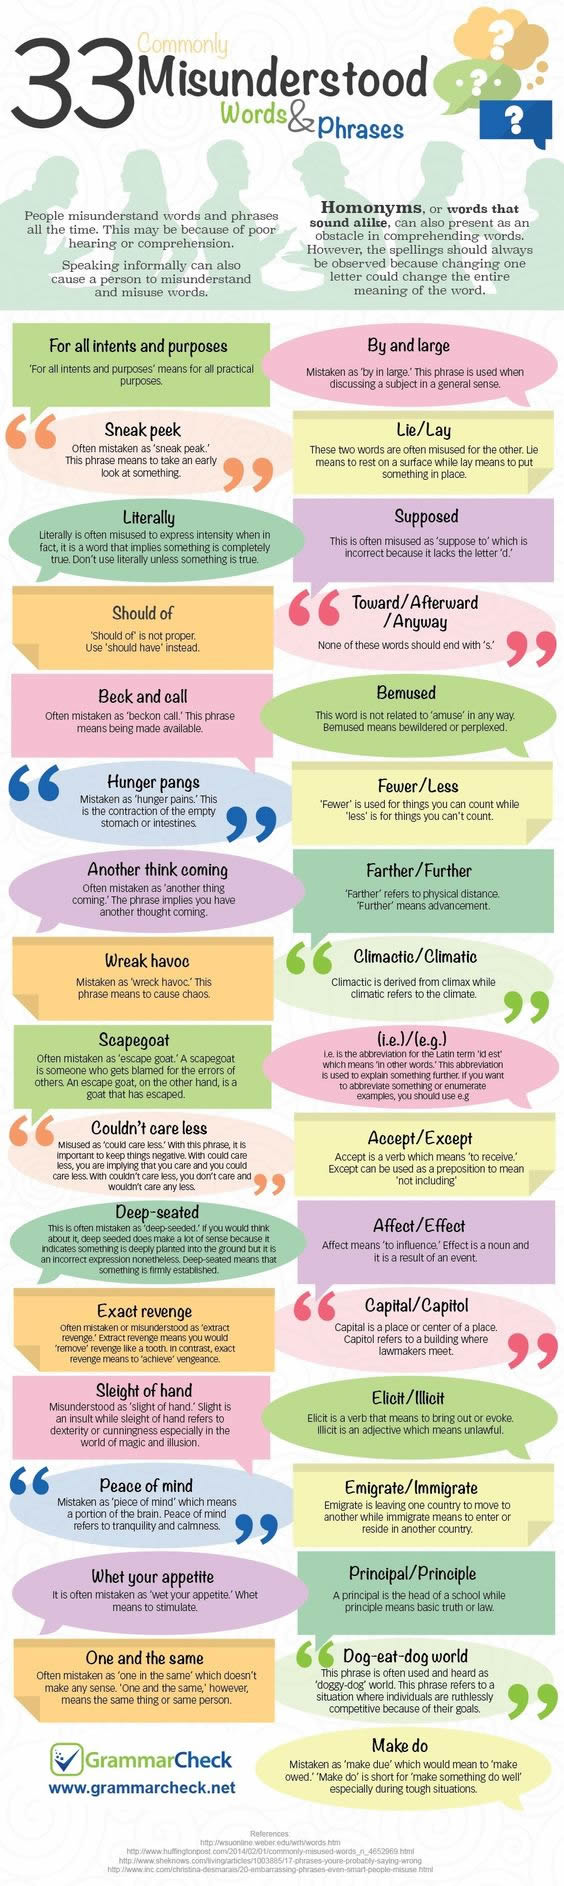 33 commonly misunderstood words and phrases